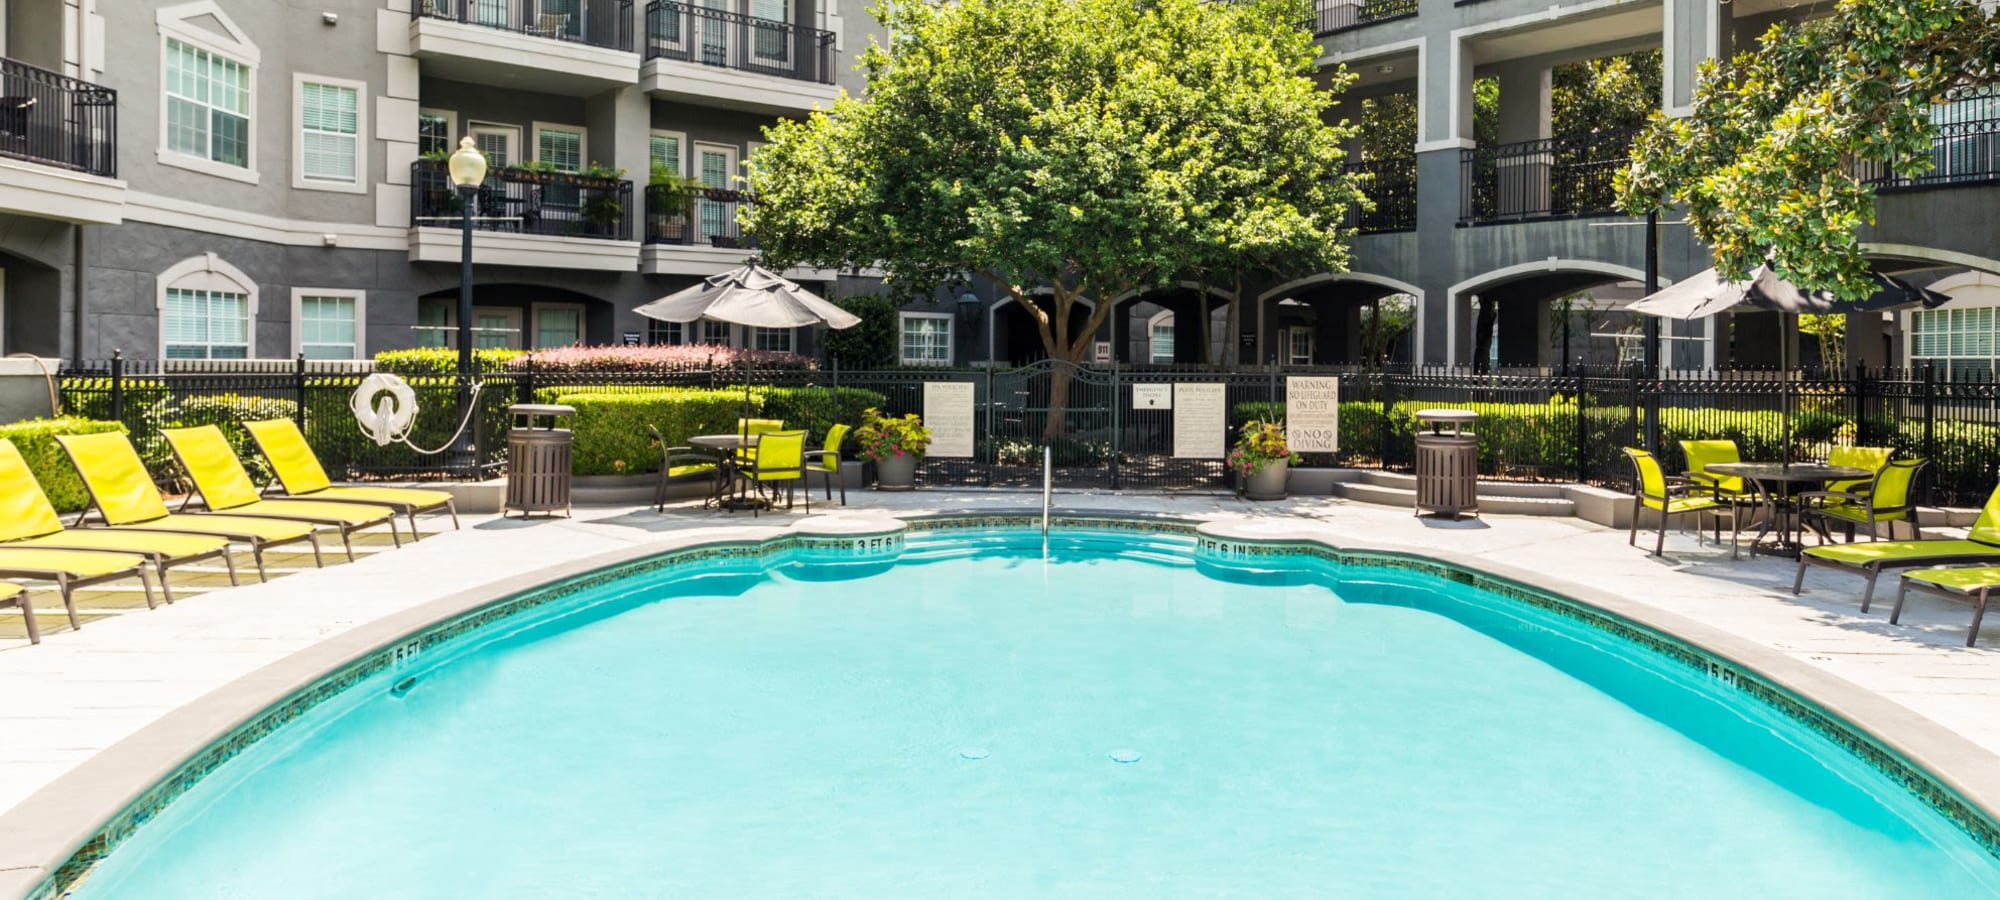 Apply to live at Marquis at Tanglewood in Houston, Texas